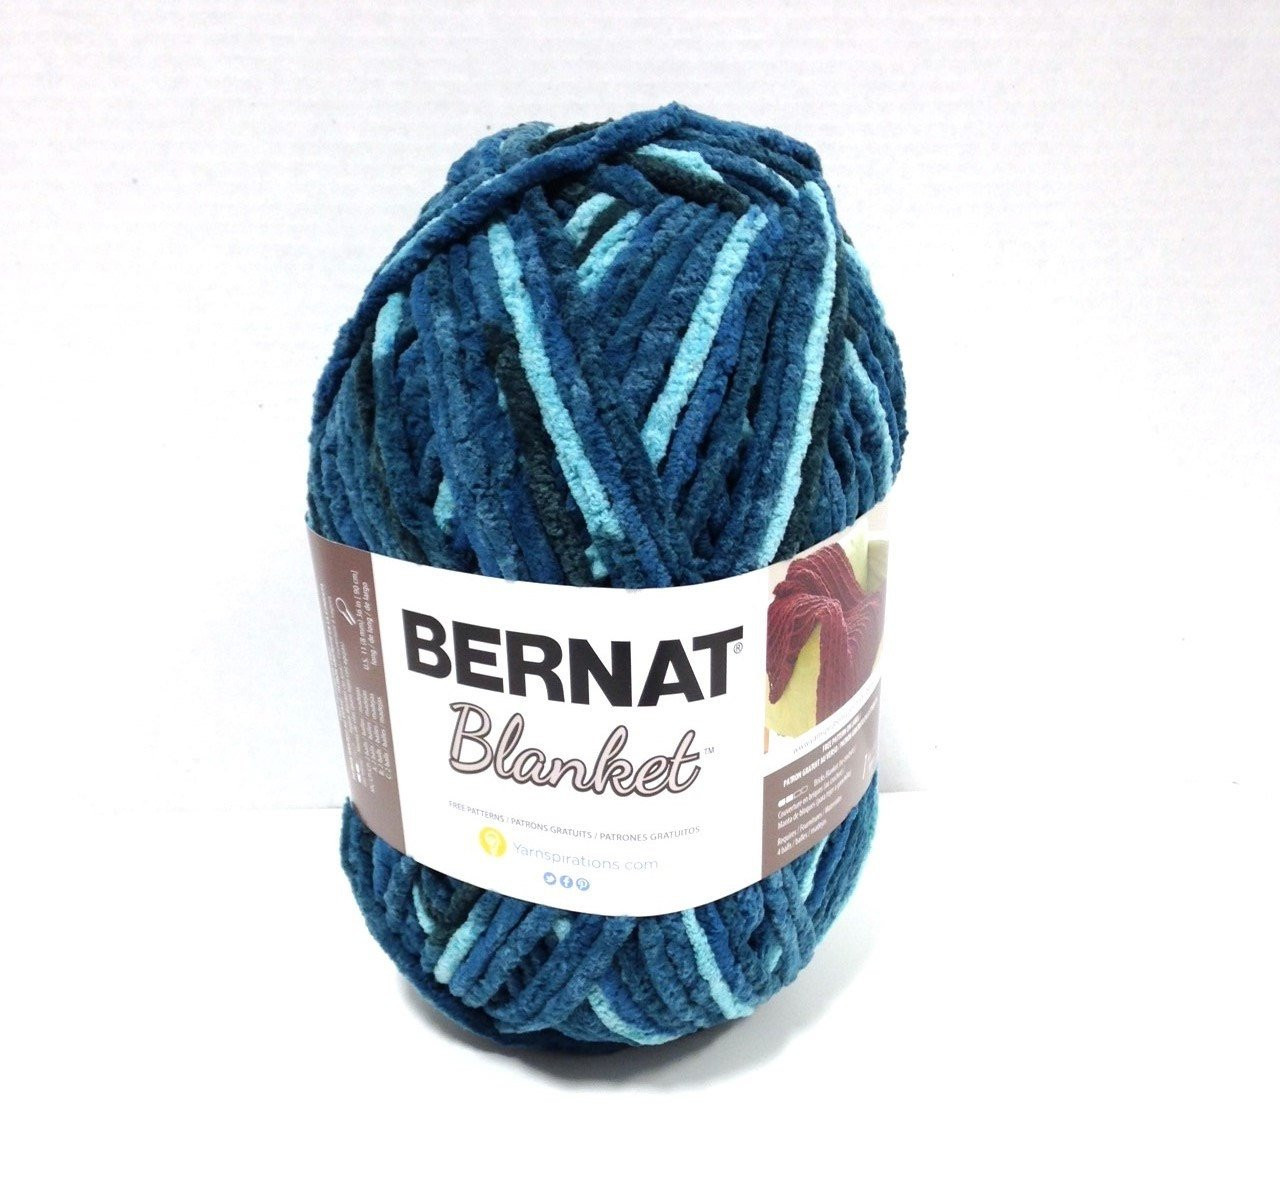 Bernat Blanket Yarn Best Of Bernat Blanket Yarn In Teal Dreams 300 Gram Ball New Of Beautiful 42 Models Bernat Blanket Yarn